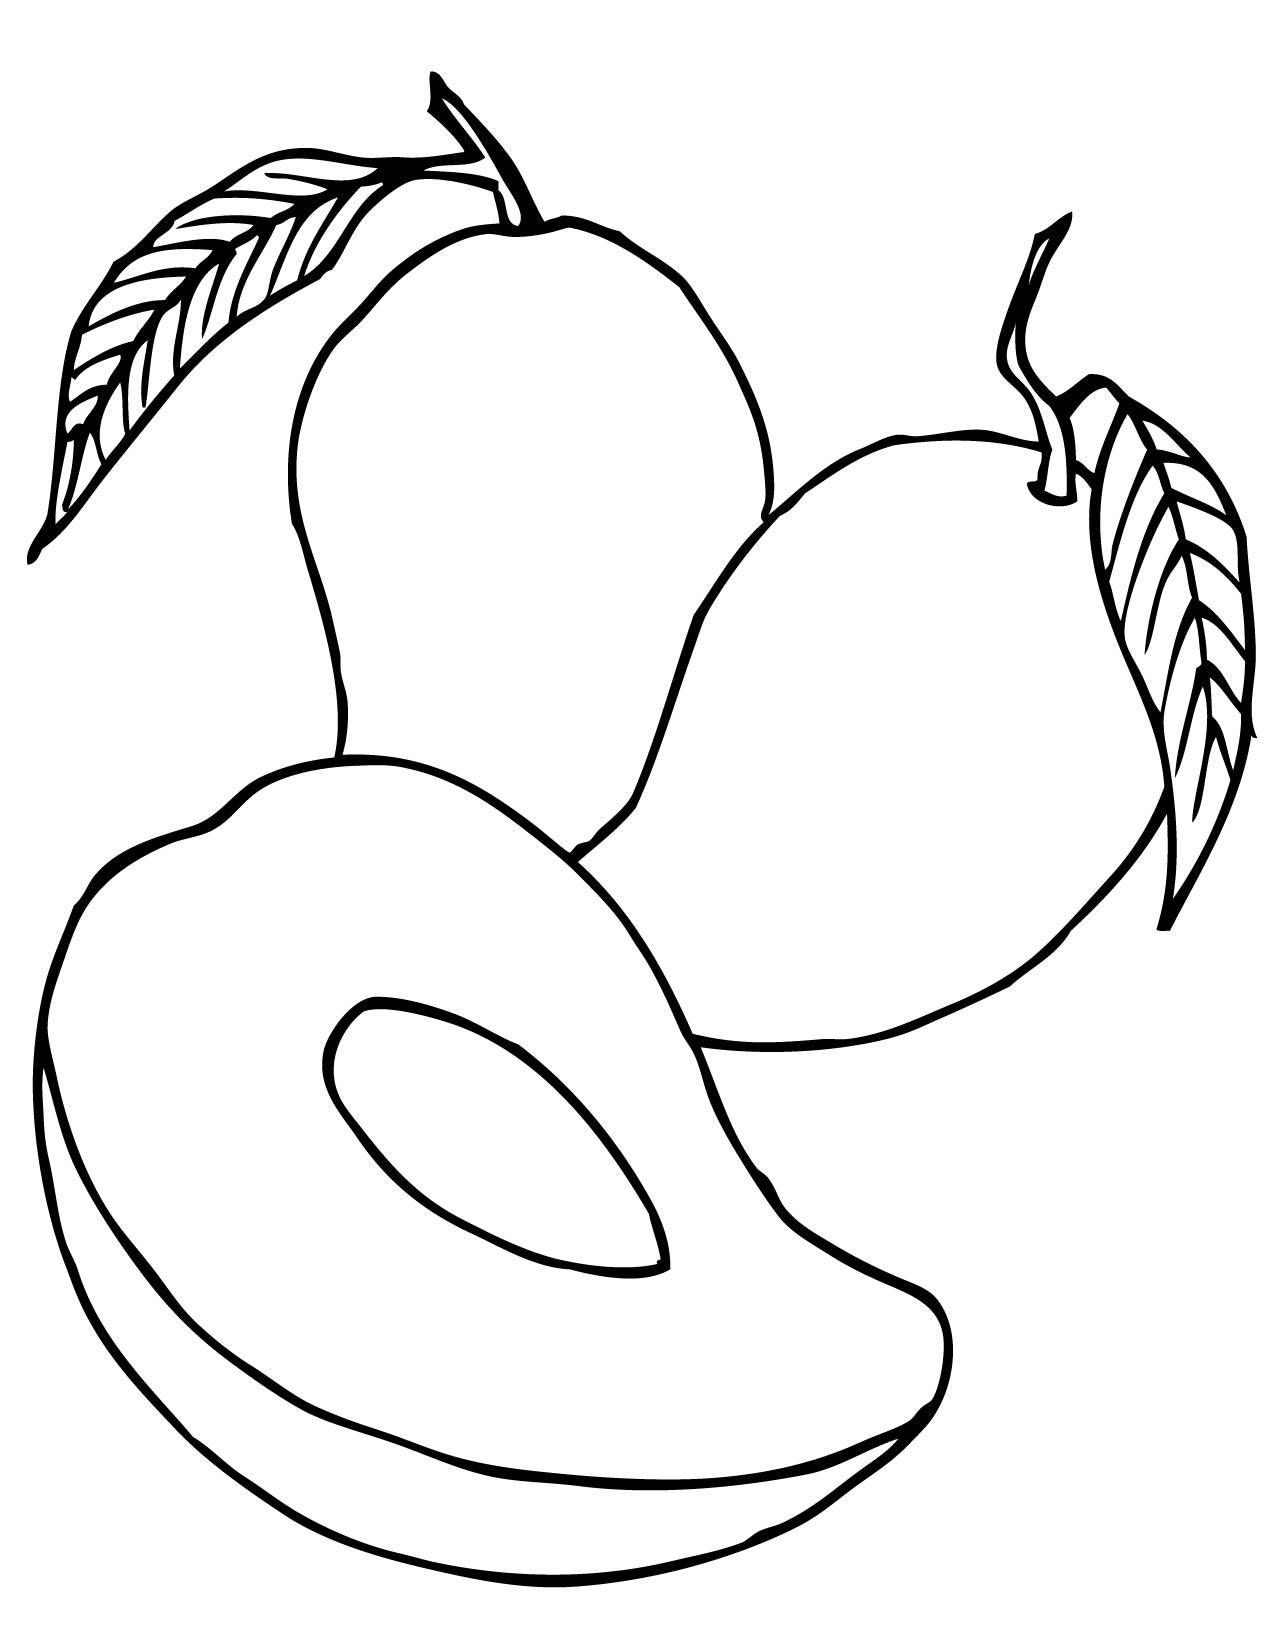 Book Cover Black And White Clipart ~ Black and white fruit clipart google search fruits